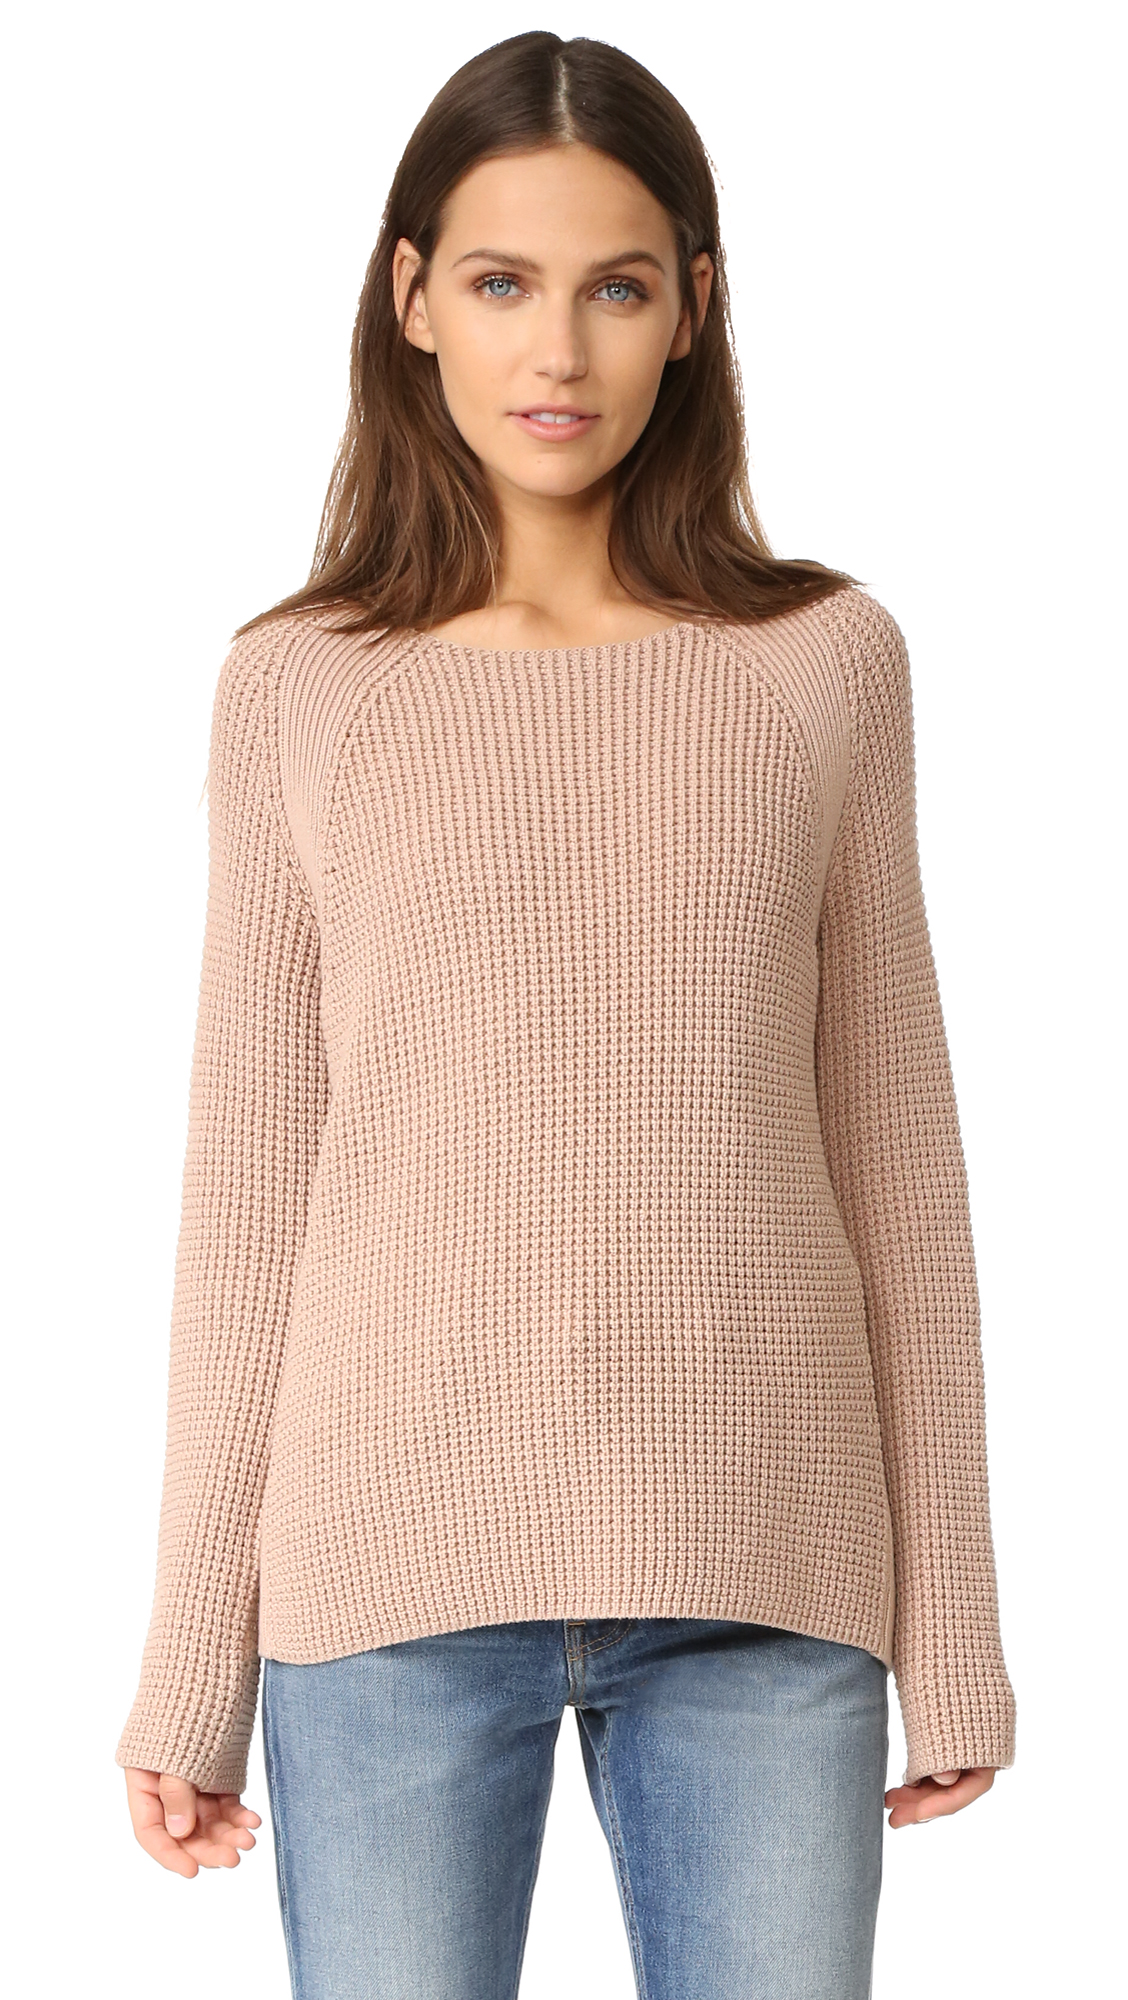 Vince Waffle Stitch Crew Pullover - Pink Cantare at Shopbop